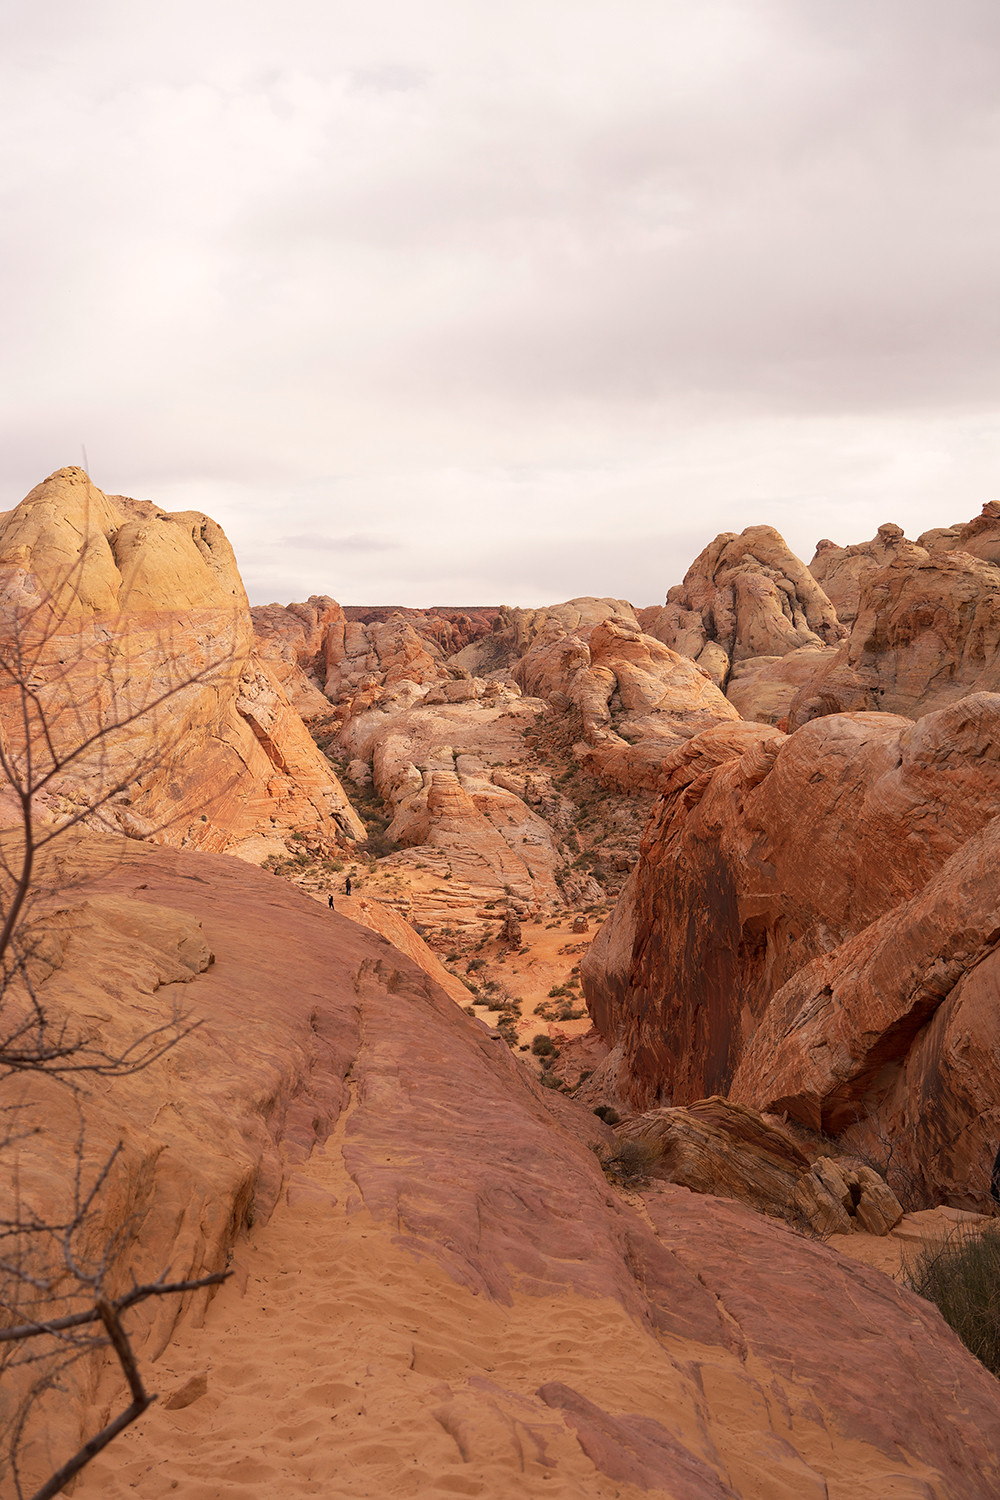 17valleyoffire-whitedomes-vegas-nevada-travel-landscape-photography